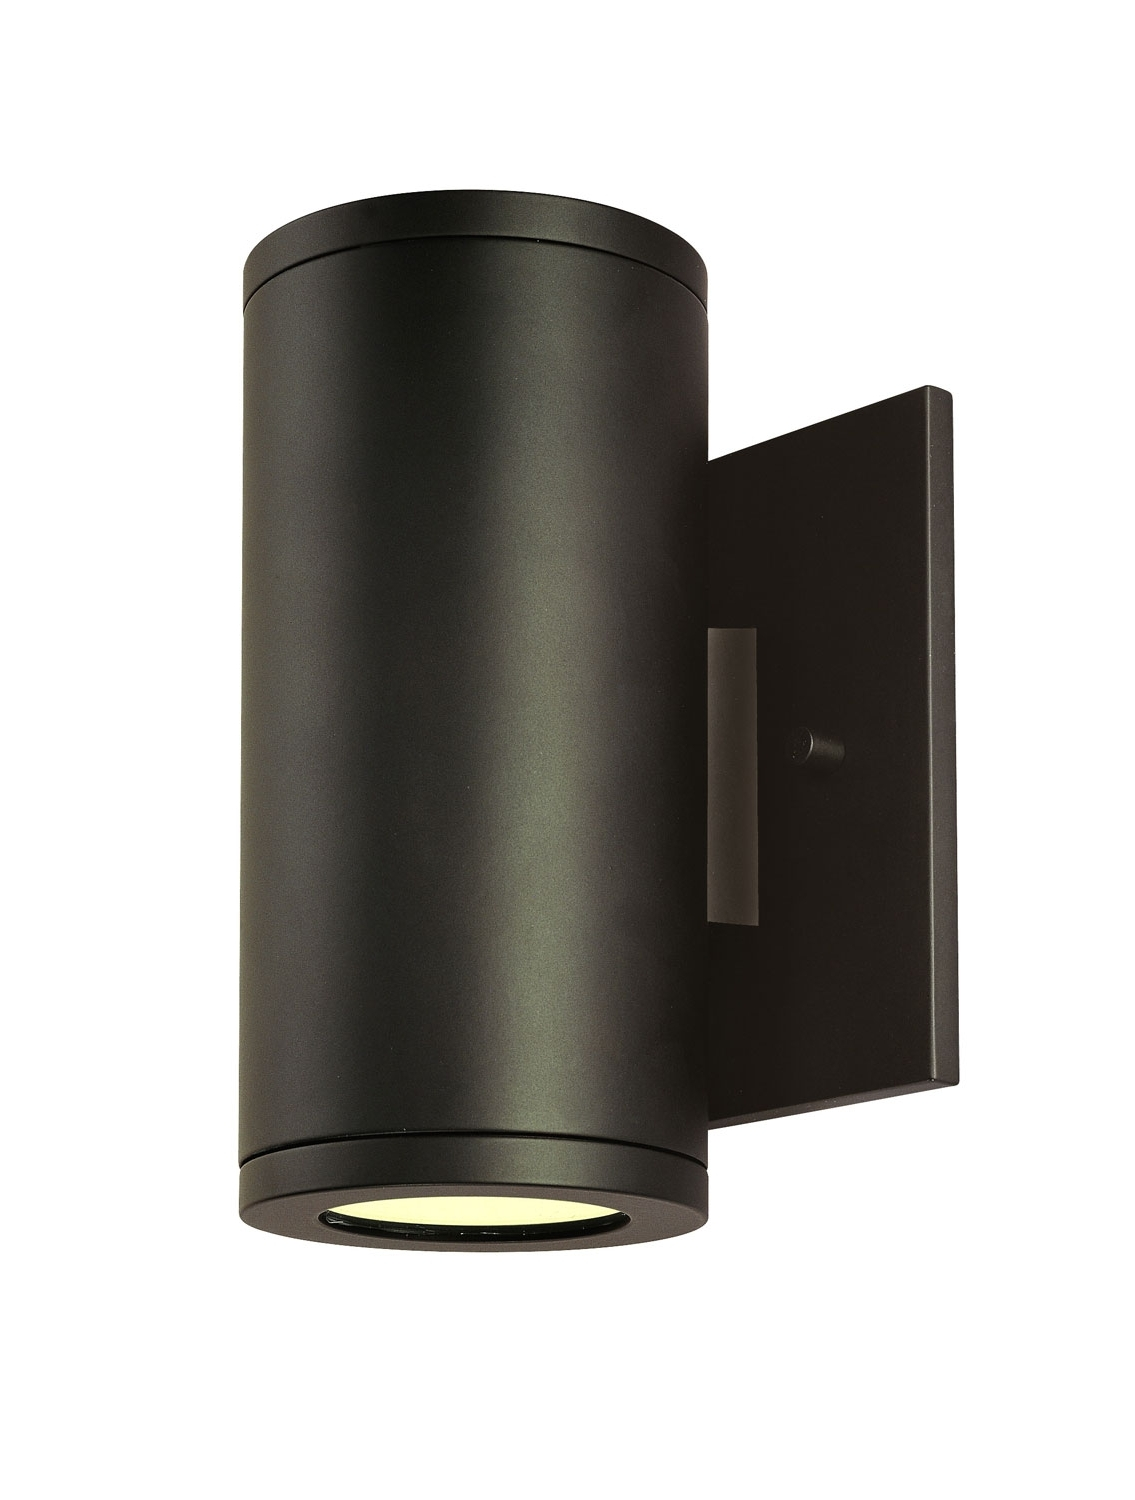 Light : Dark Wall Mounted Outdoor Lighting Black Simple Ideas For Well Known Outdoor Wall Hung Lights (Gallery 3 of 20)